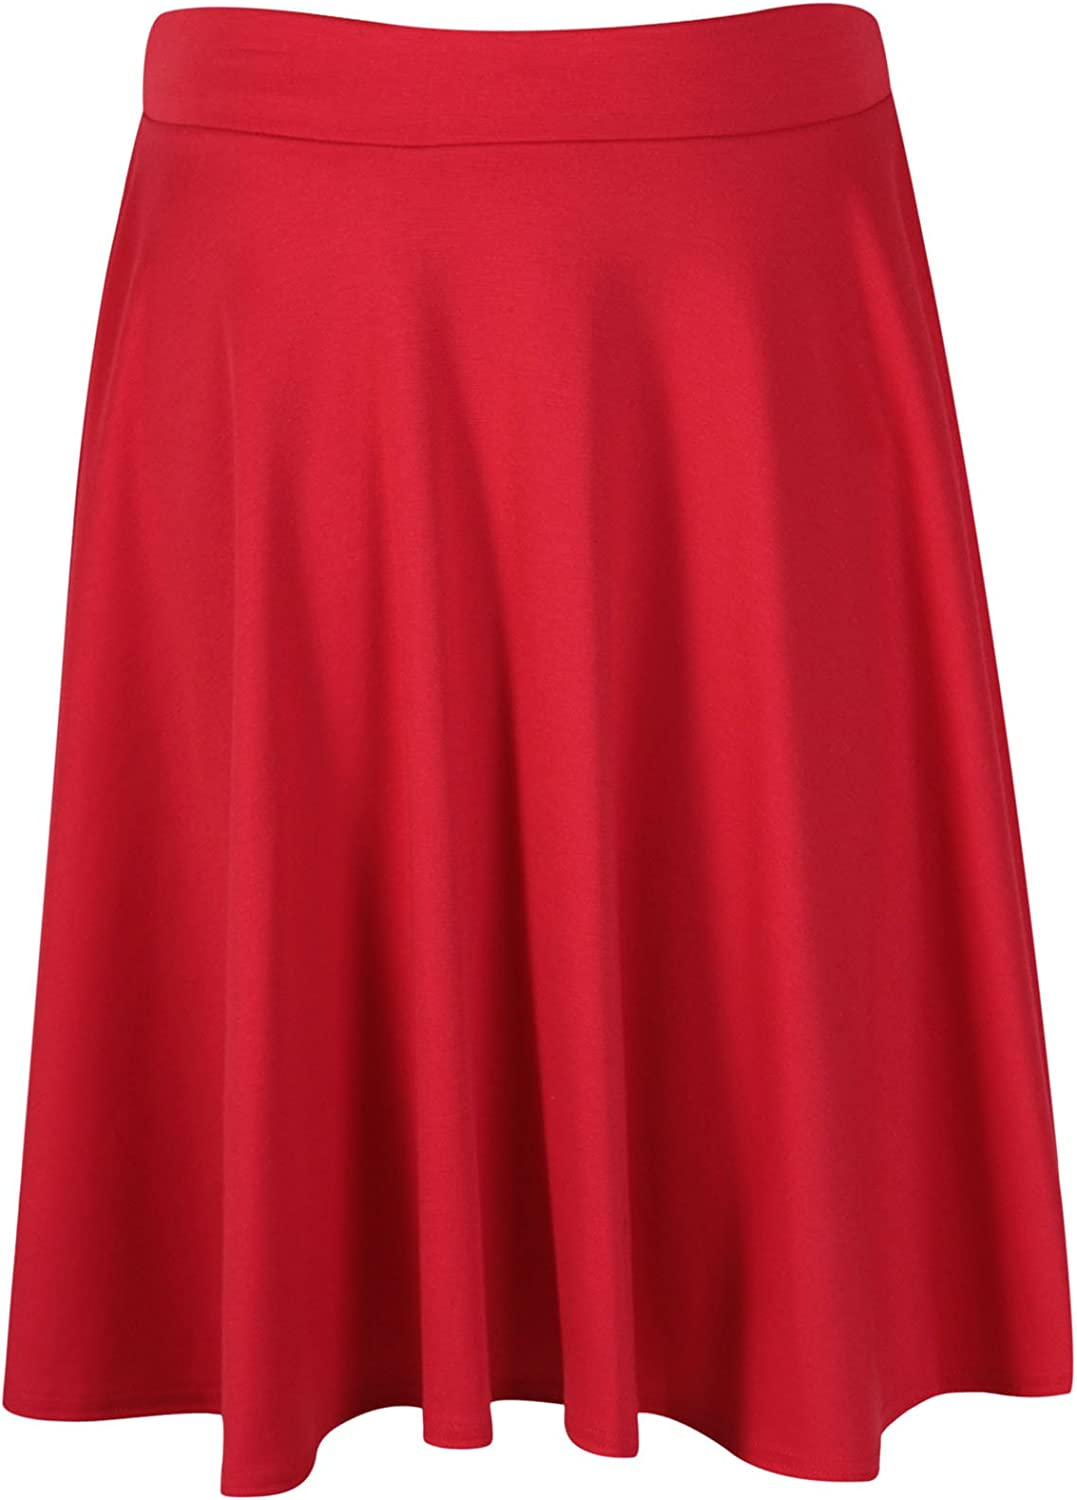 Ladies Elasticated Waistband Midi Skirt